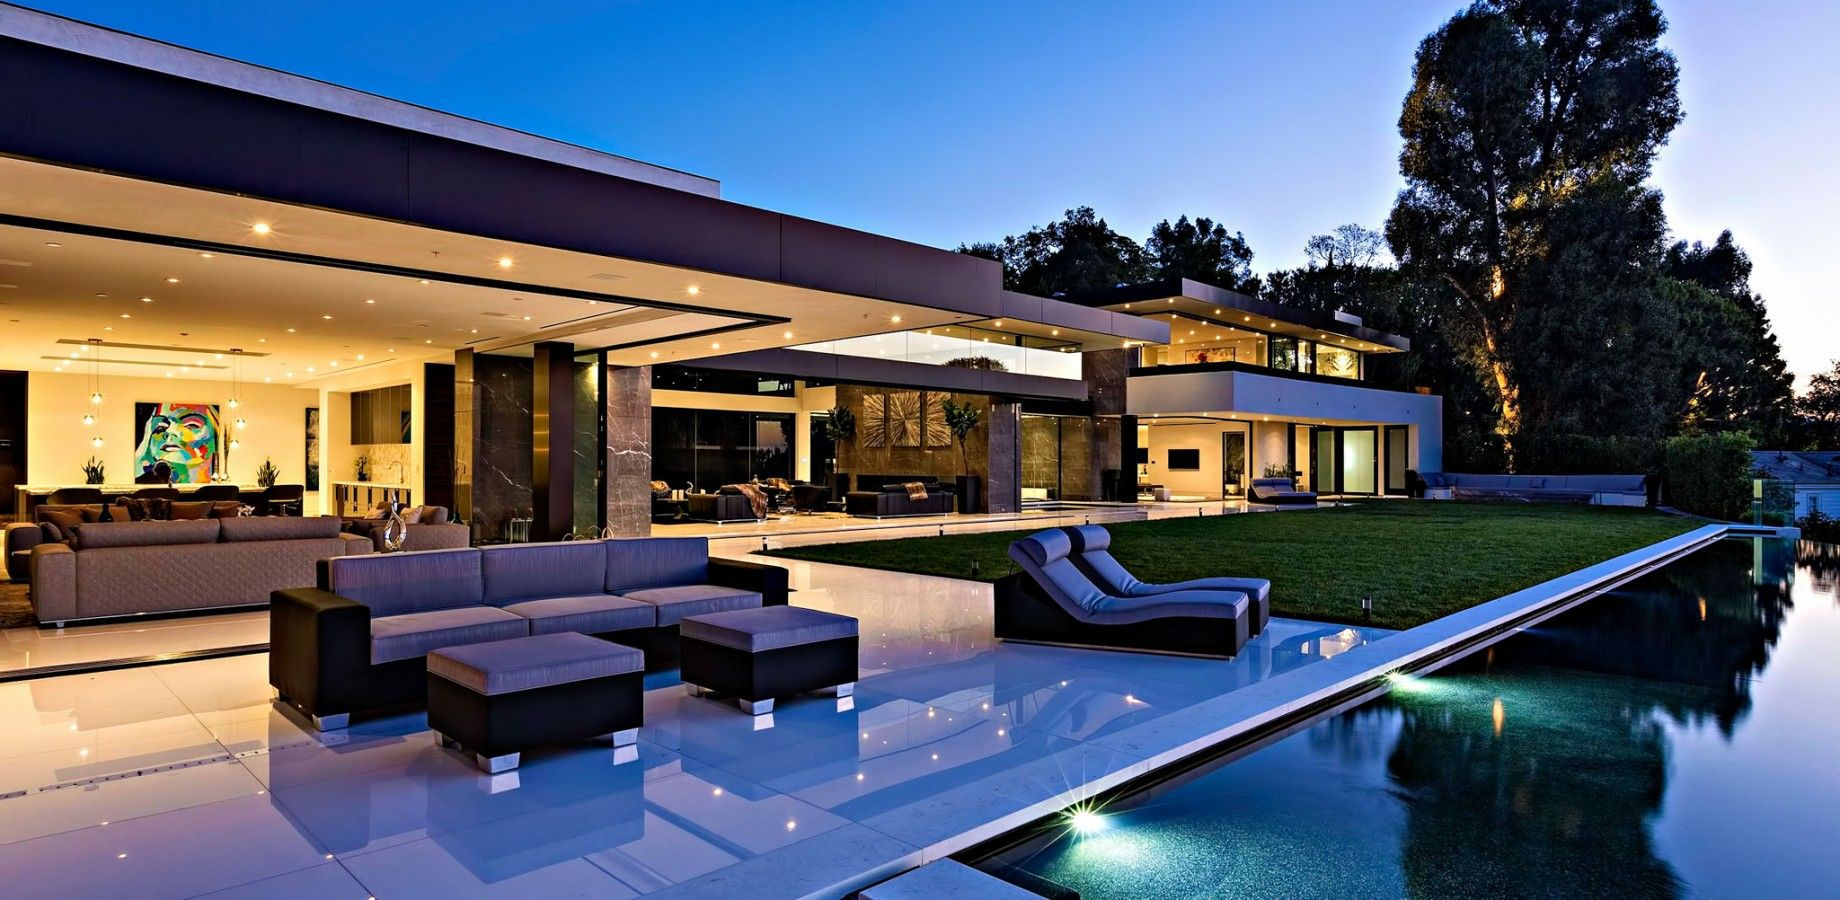 55 million bel air luxury residence 864 stradella road Luxury home builders usa